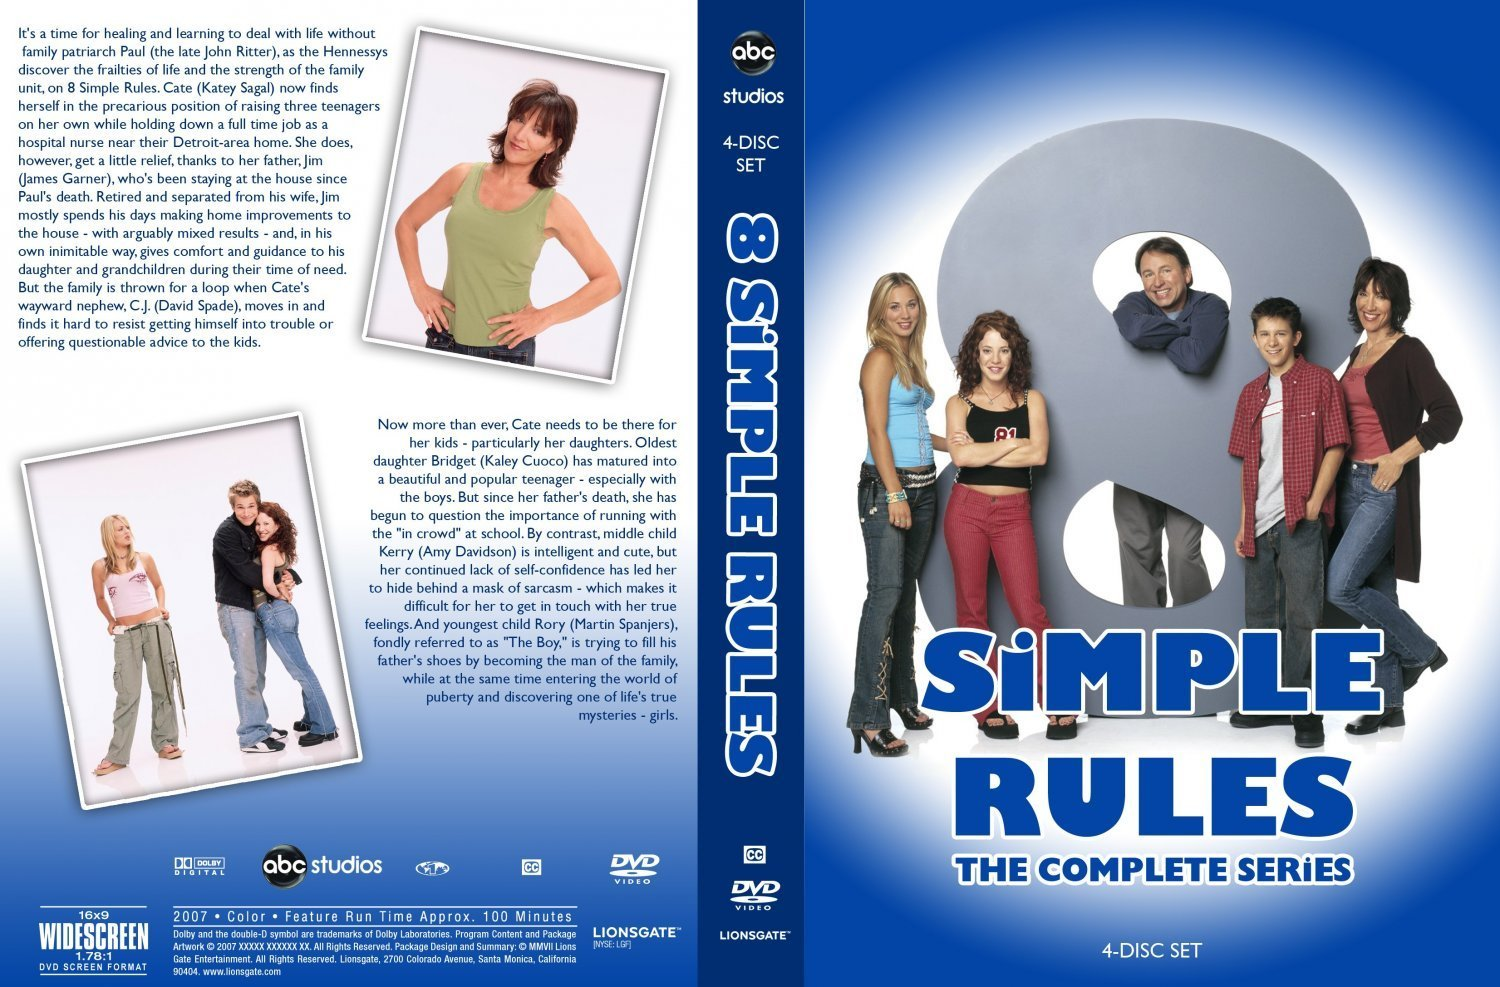 8 simple rules for dating my teenage daughter on dvd